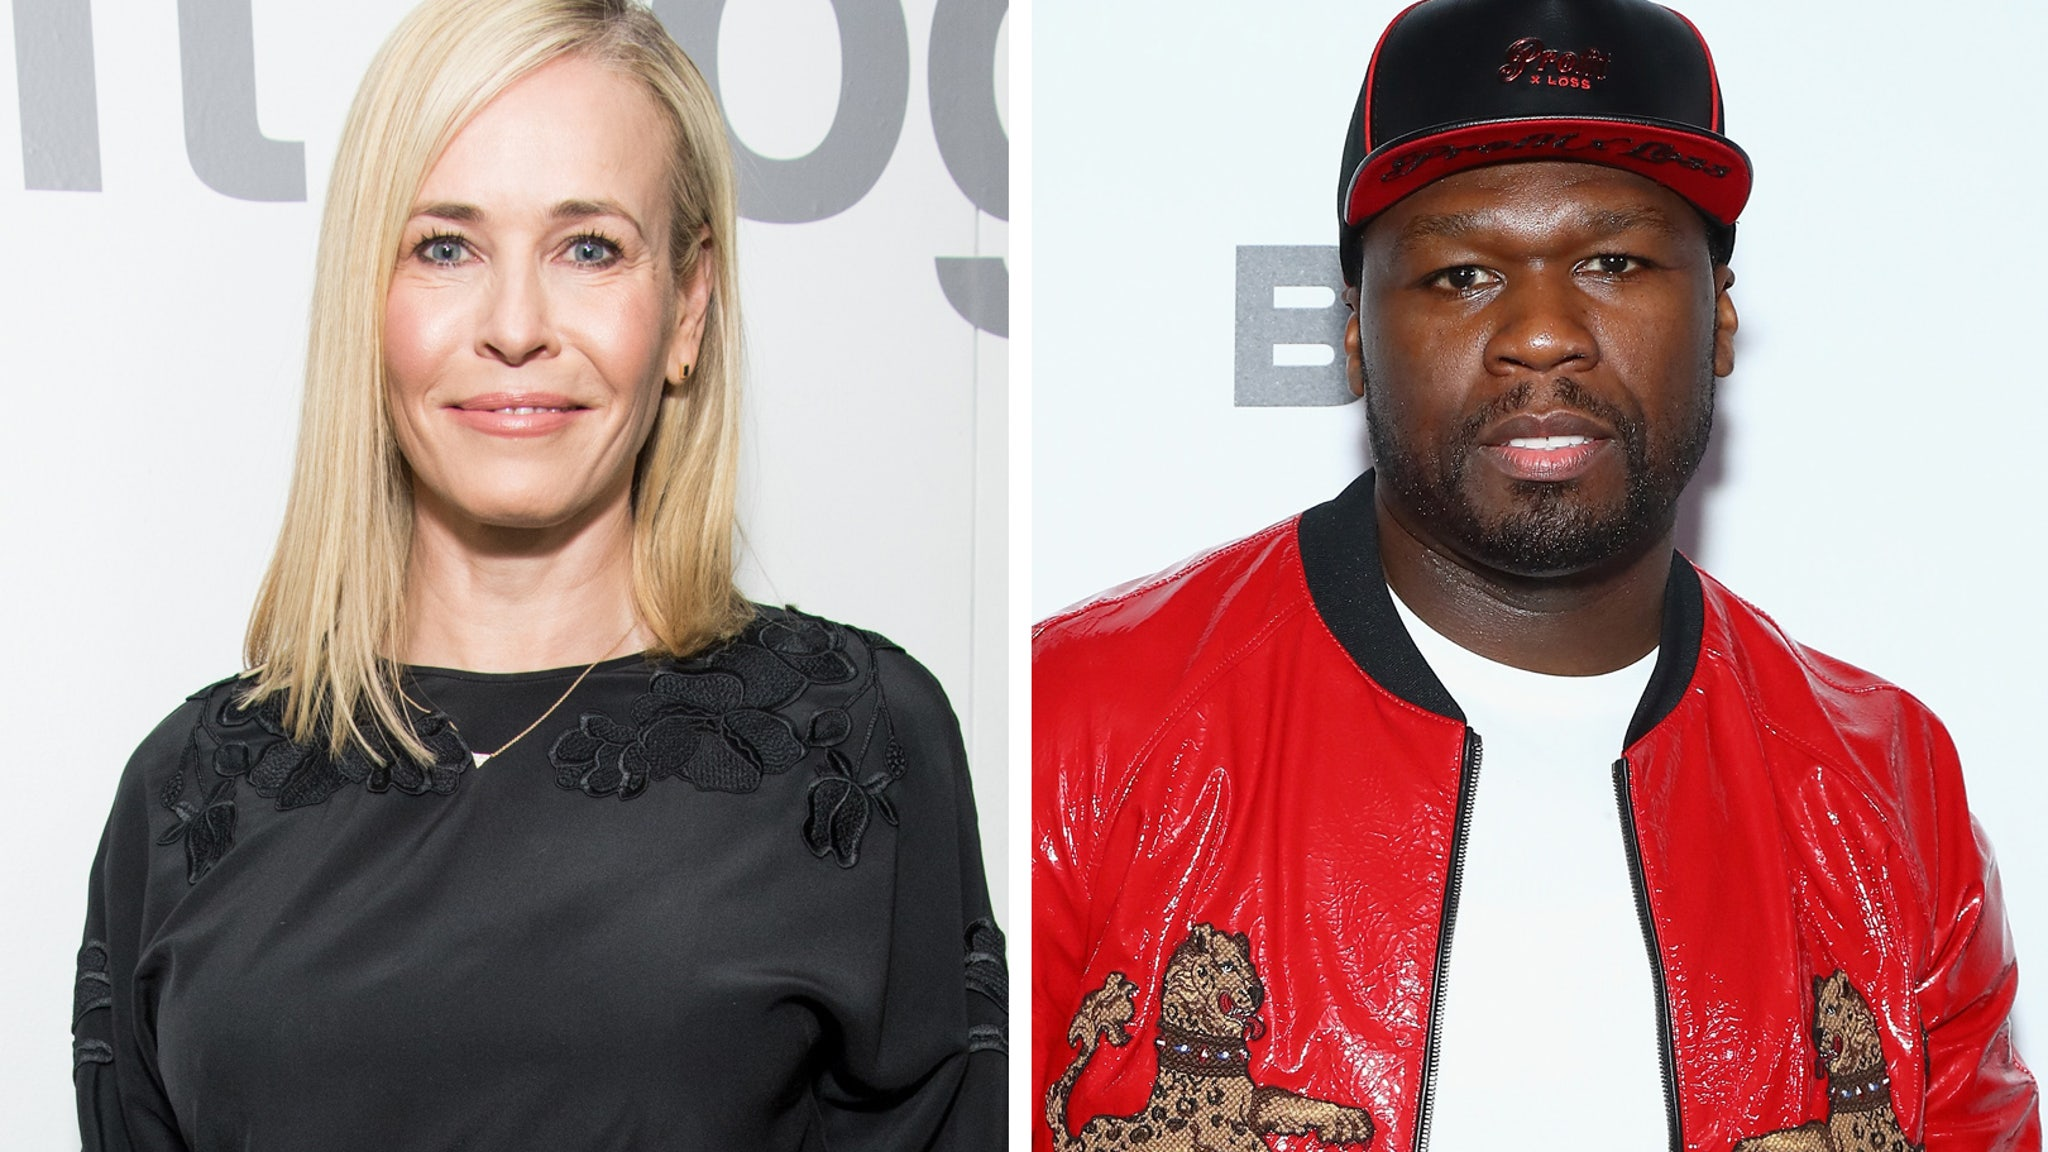 Chelsea Handler Offers to Pay Ex-Boyfriend 50 Cent's Taxes to Change His Vote for Trump